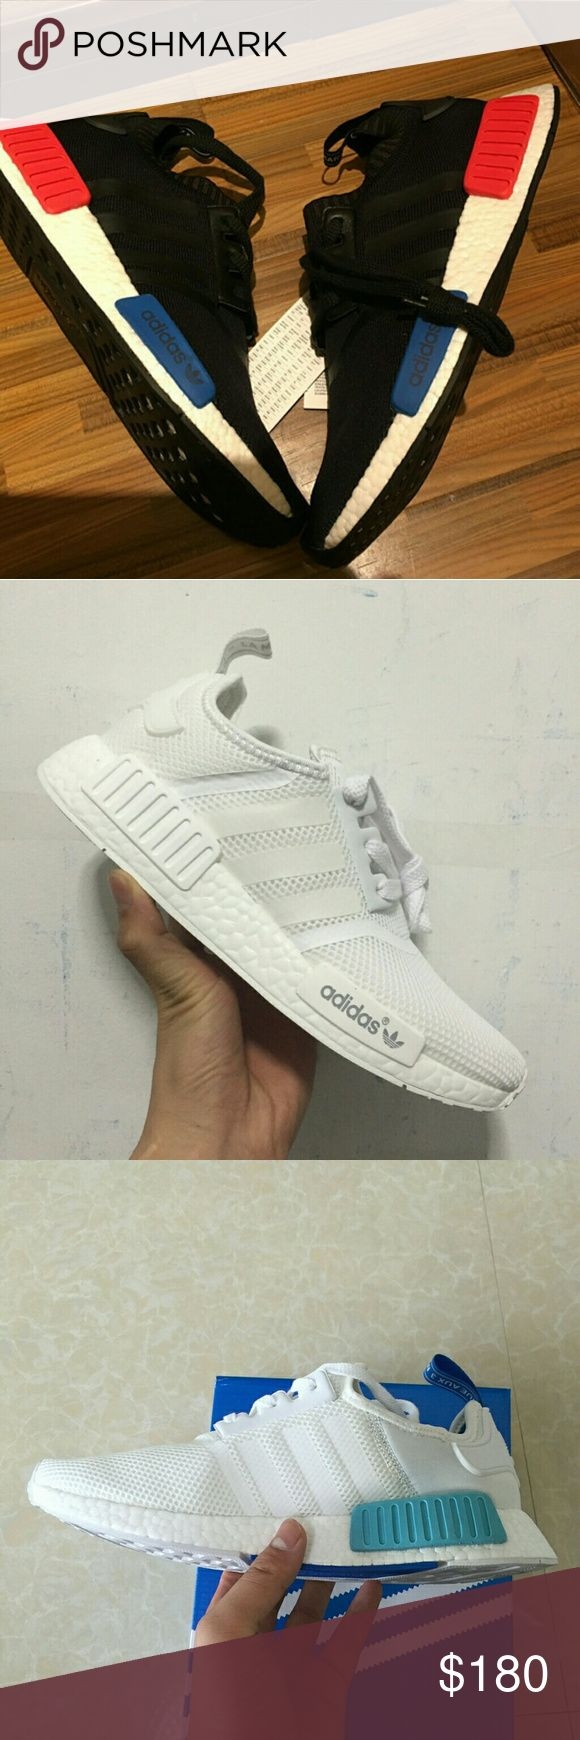 Adidas NMD r1 runner boost black white Size:5-11(men & women),  Color: pirate black S81846, All white S79166, White blue S75235, Black S79168;  (Get Big Discount!!!) Welcome to make an offer. adidas Shoes Athletic Shoes